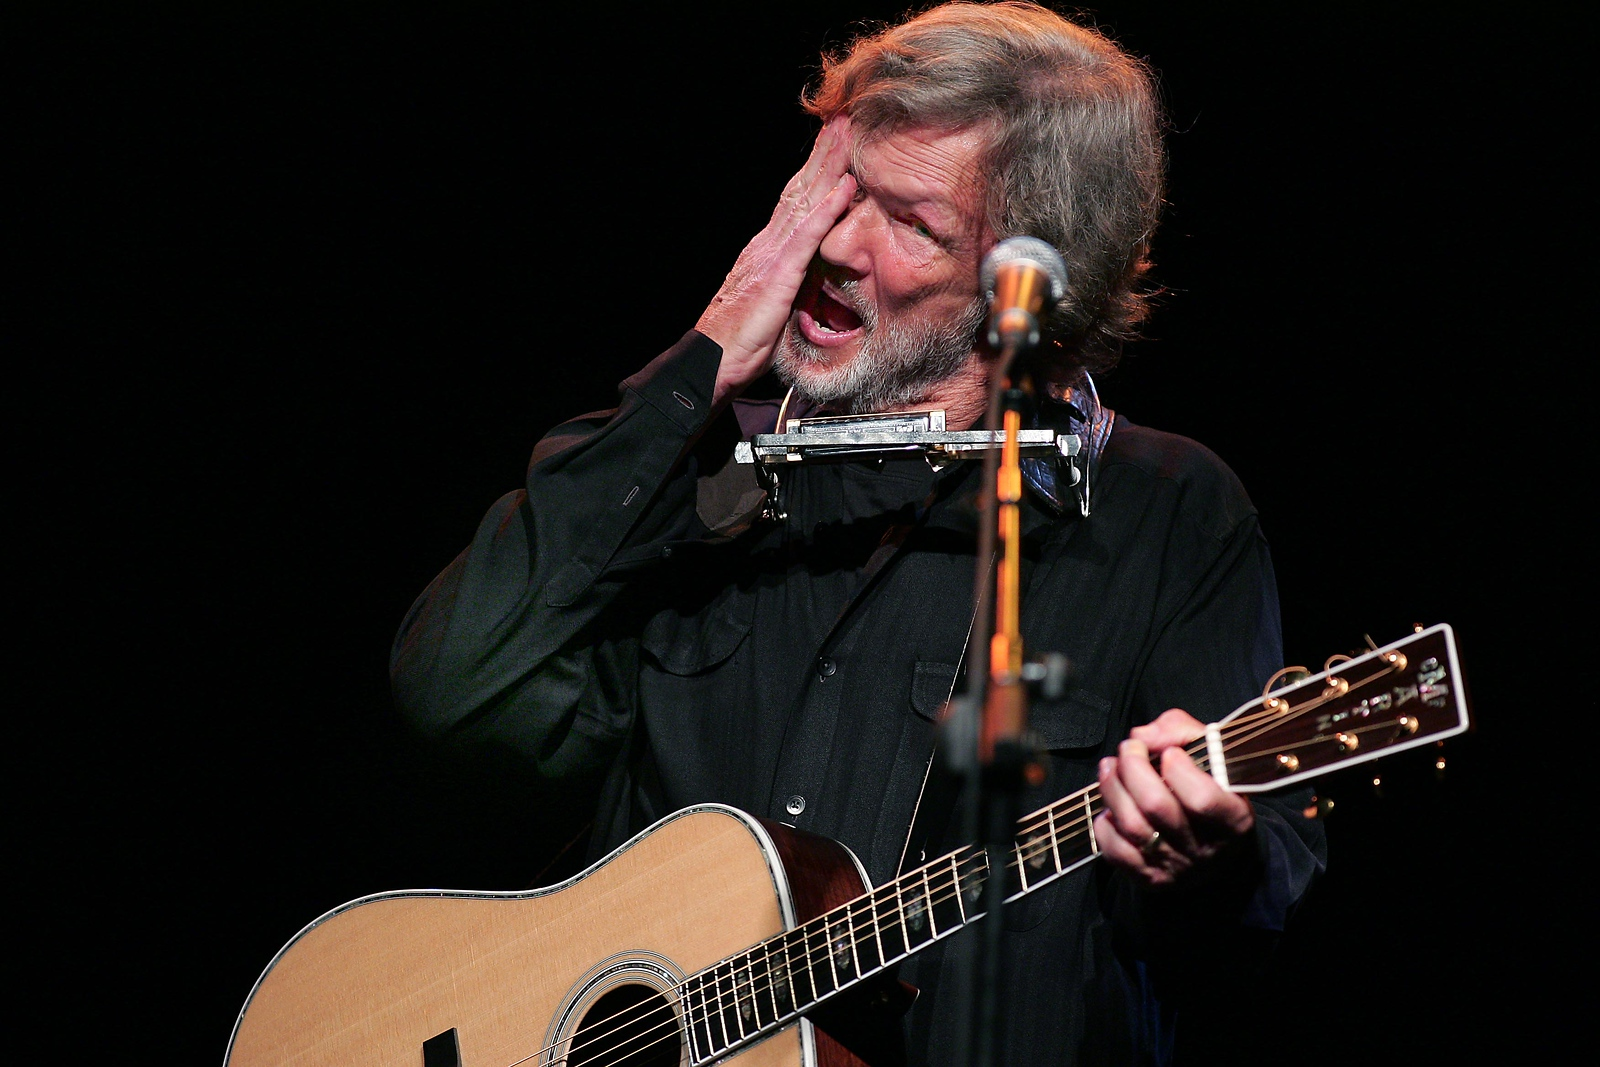 Kris Kristofferson wipes the sweath from his brow at the  sell out concert in the INEC in Killarney where the  world famous Singer/Actor played all his favorite songs on Thursday night.Photo Brendan Landy